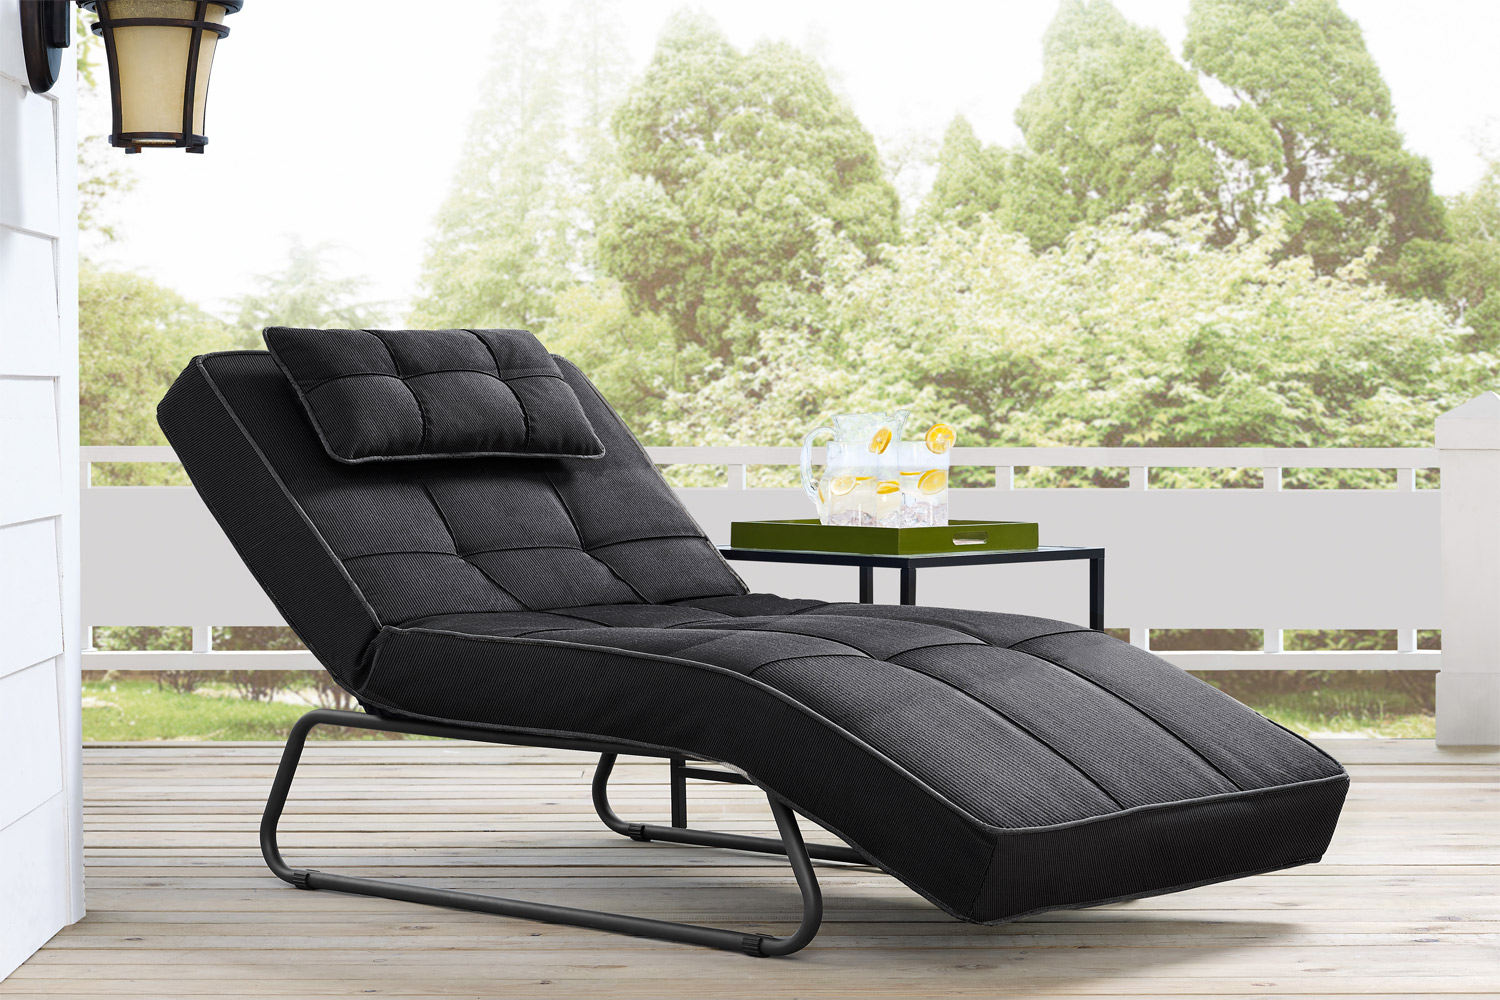 Modern Sofa Beds and Loungers